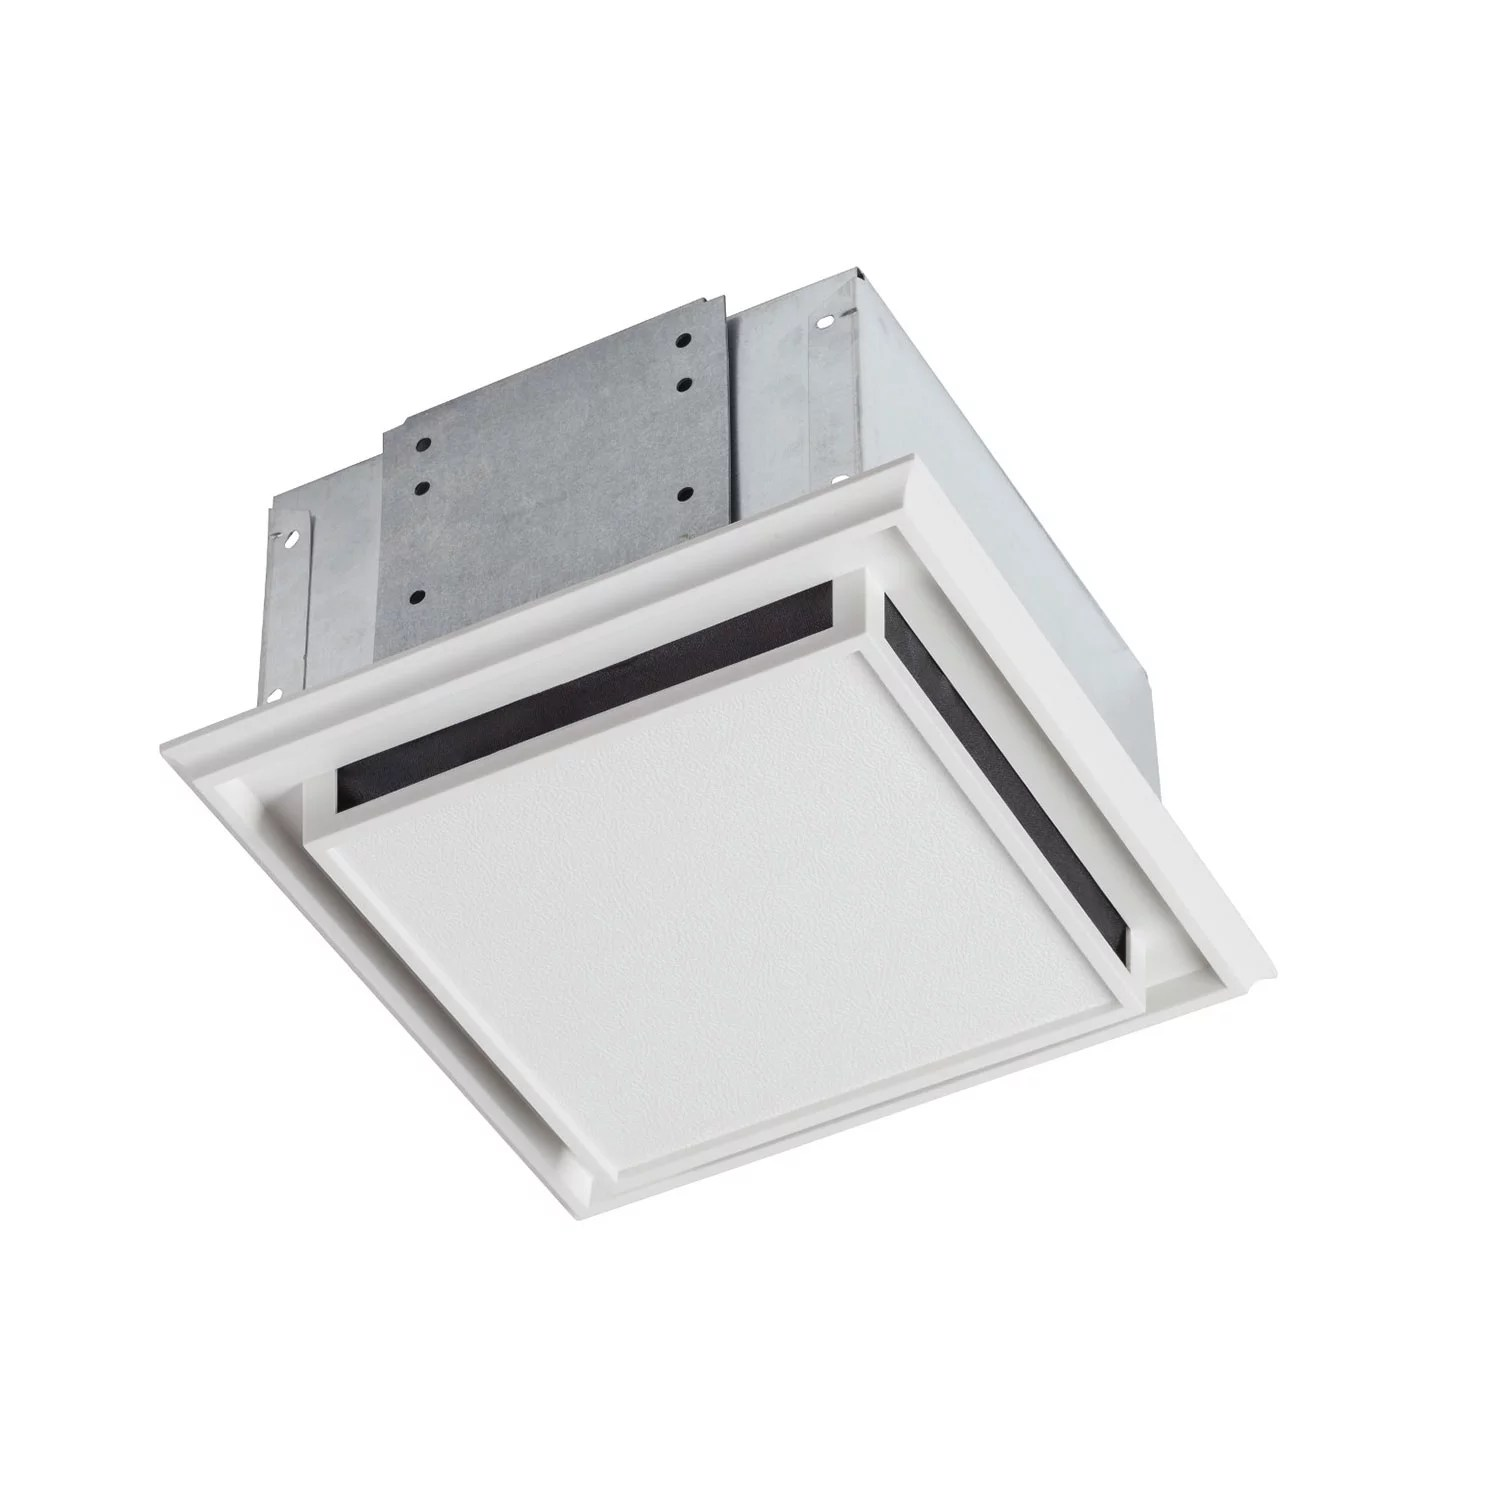 hight resolution of broan 682 bathroom ventilation fan with charcoal filter and white plastic grille walmart com